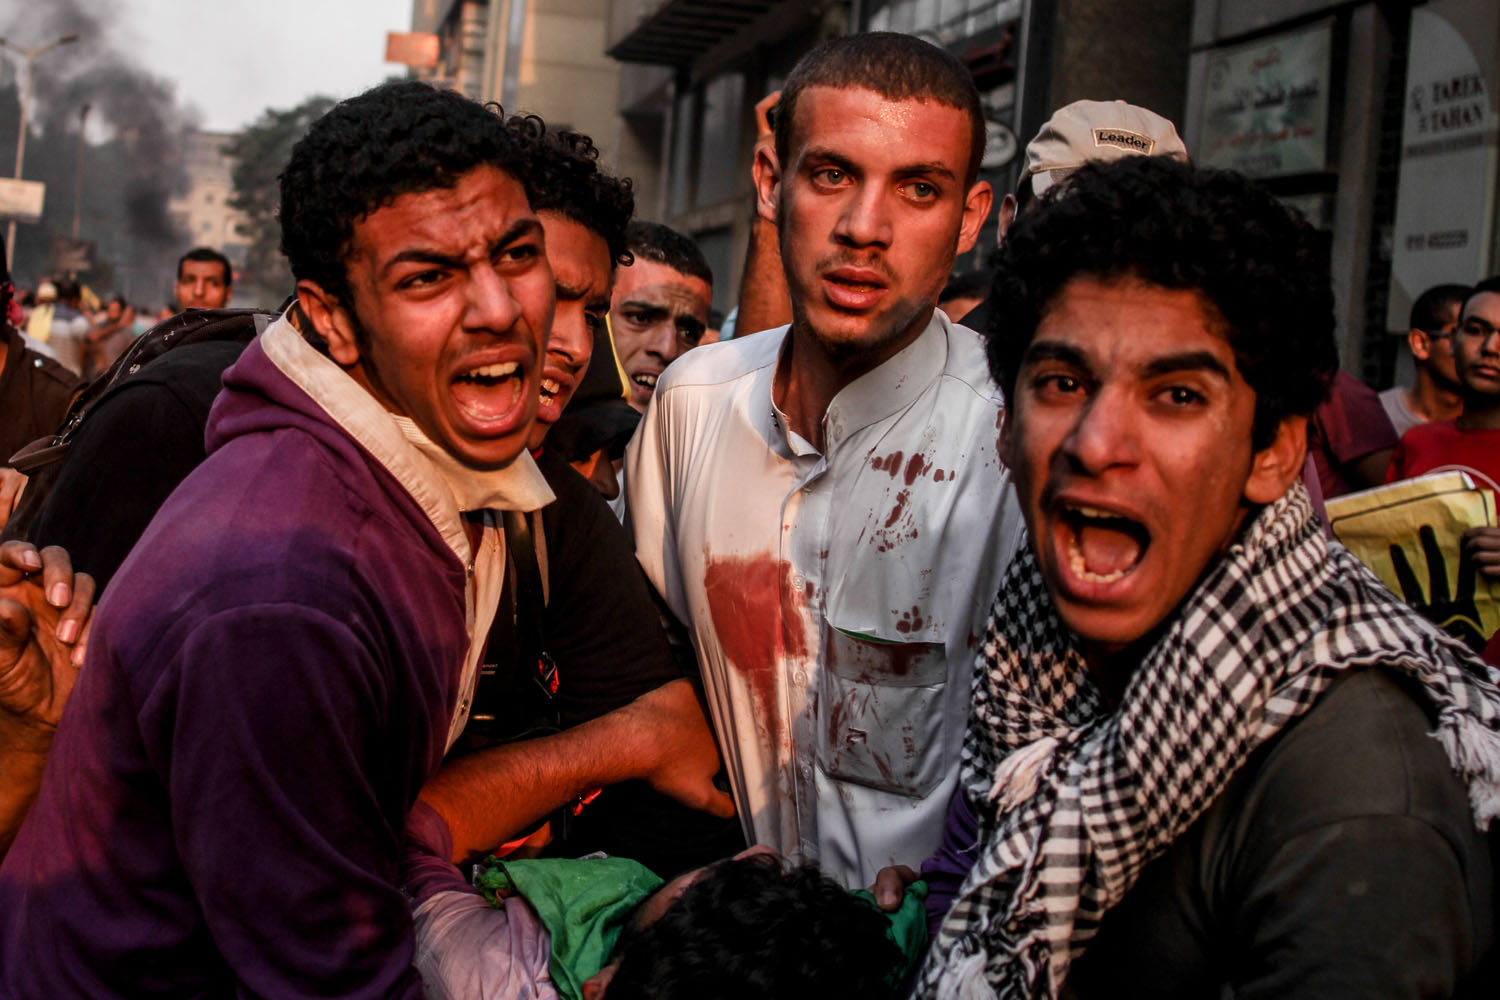 Oct. 6, 2013. An injured Egyptian supporter of ousted President Morsi is assisted during clashes on the day the country celebrates the 40th anniversary of the 1973 Arab-Israeli war, in the Dokki area of Giza, near Cairo.